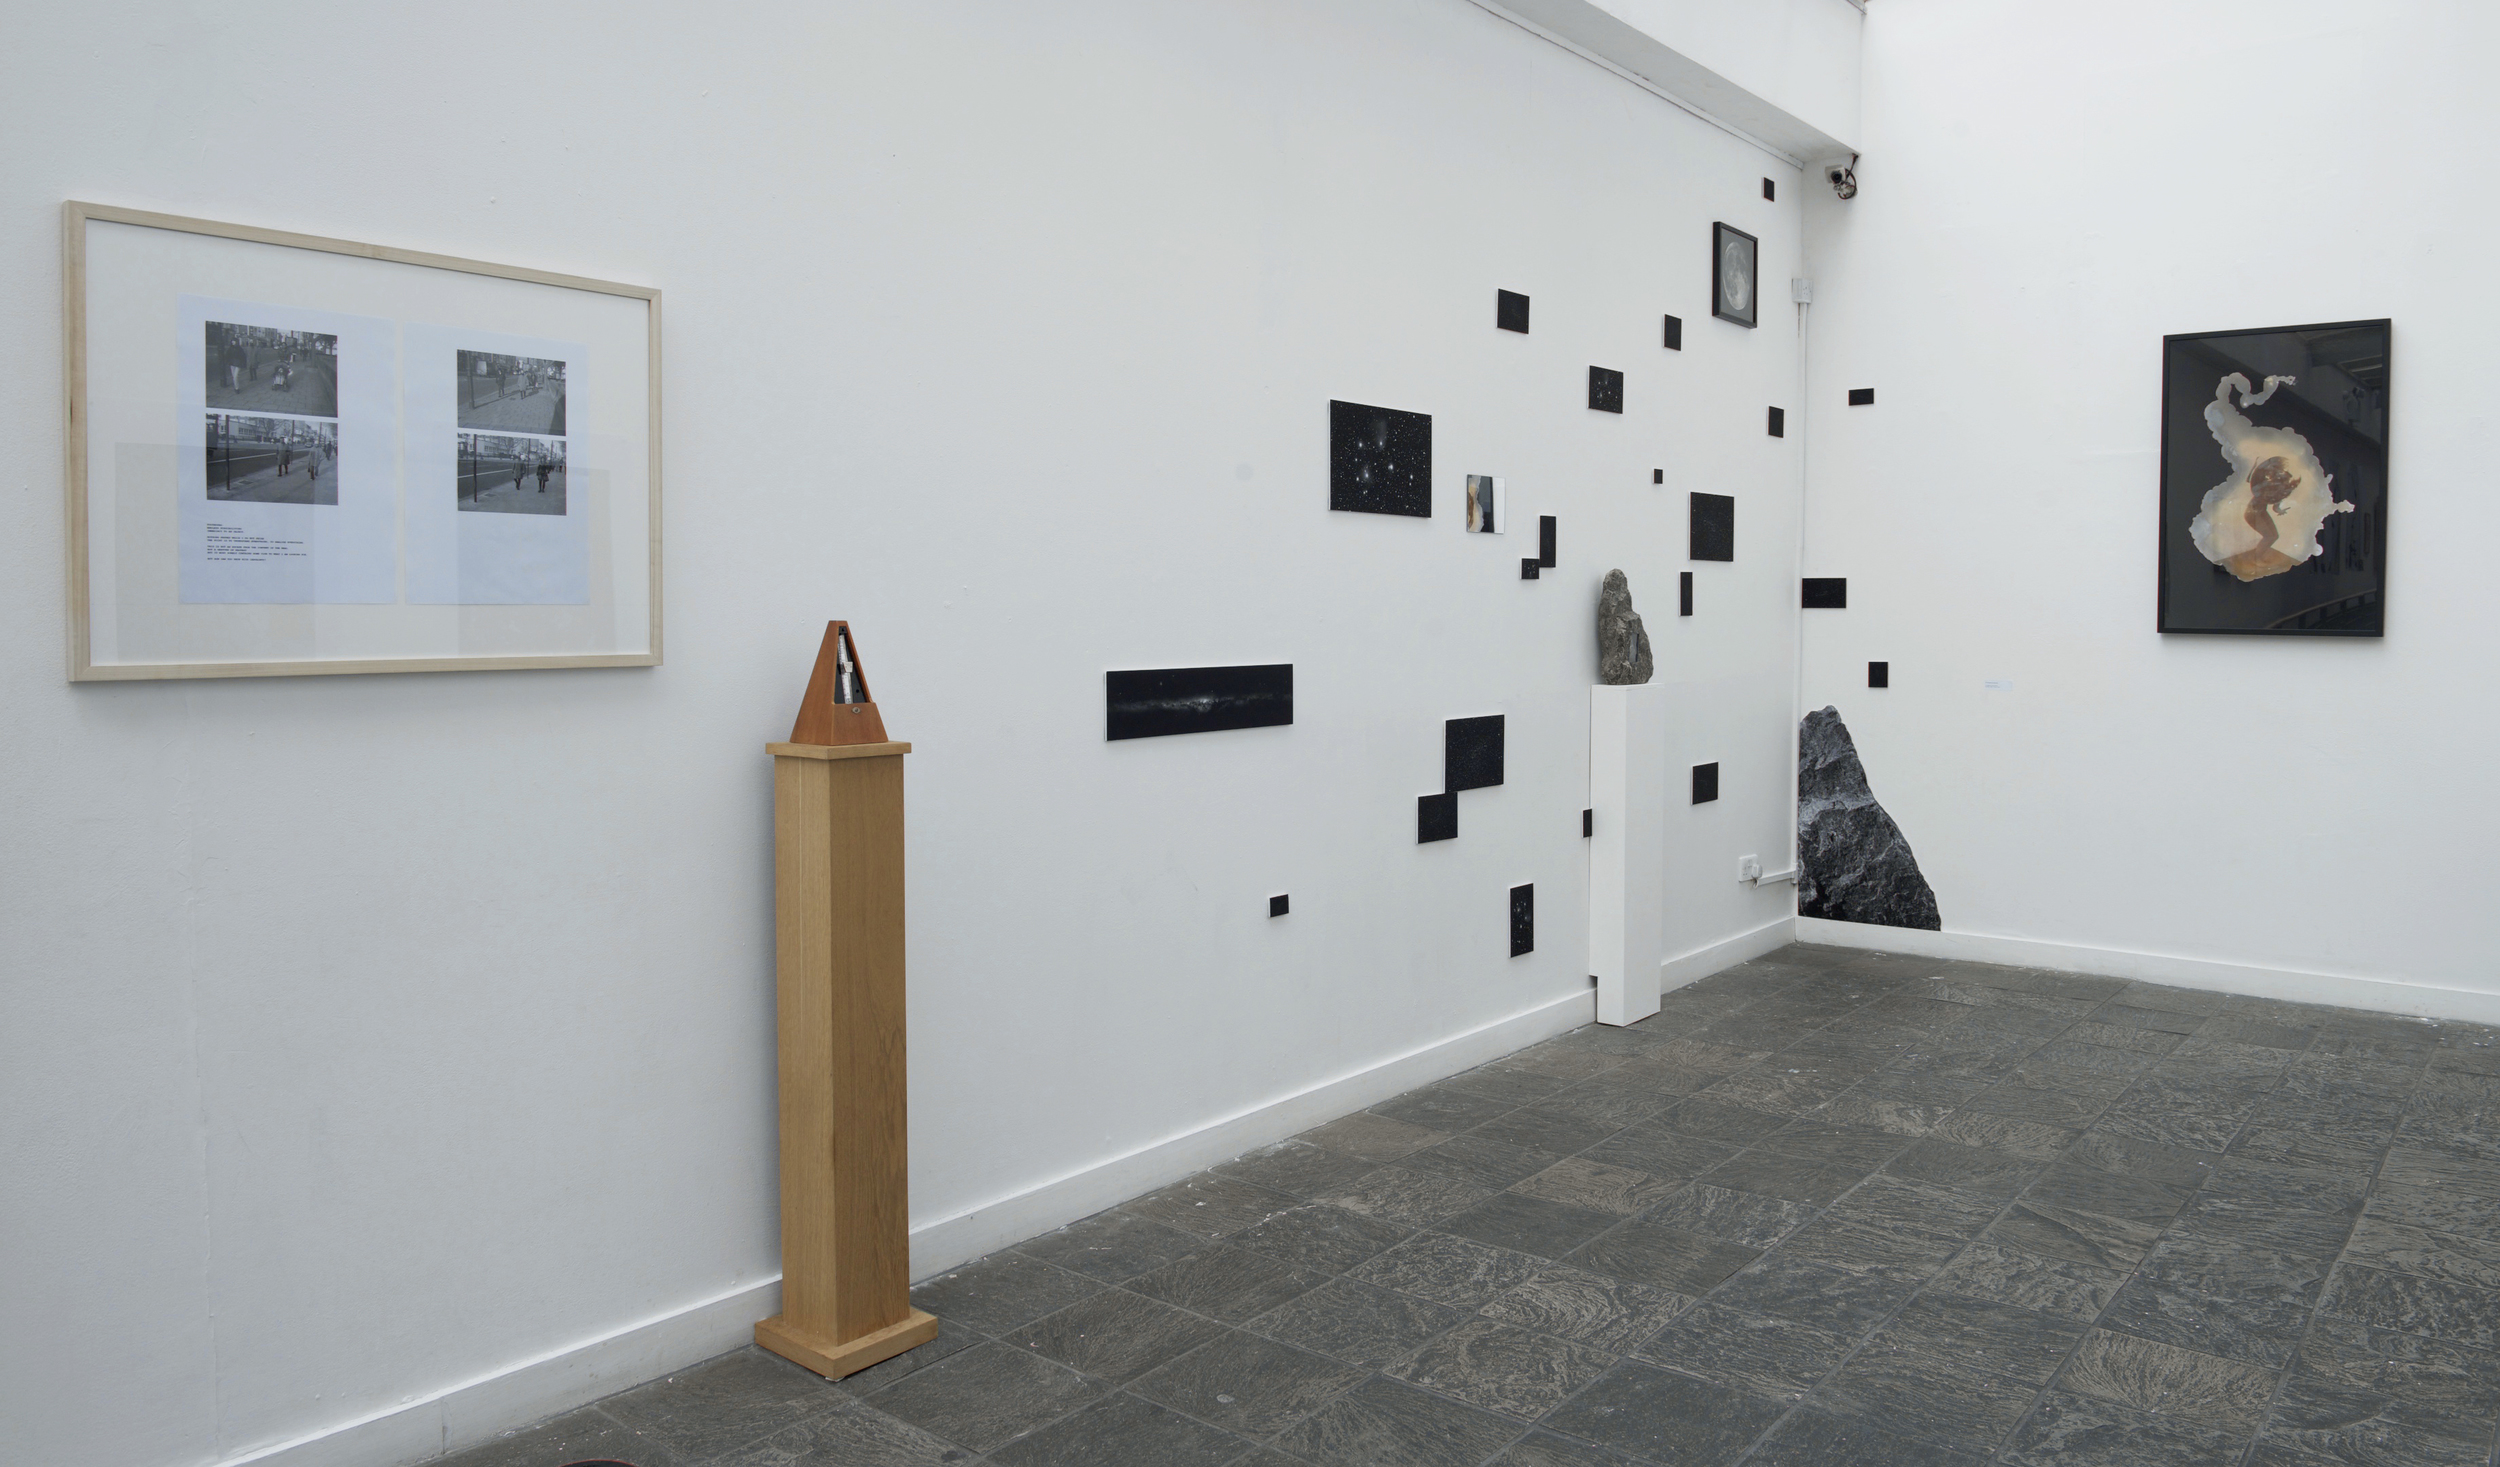 Photography as Installation  (installed 2014 at Oxford House). Courtesy of Oxford House, London and the artists Peter Ainsworth, Marcello Simeone, Ian Rudgewick-Brown, Ella Bryant.